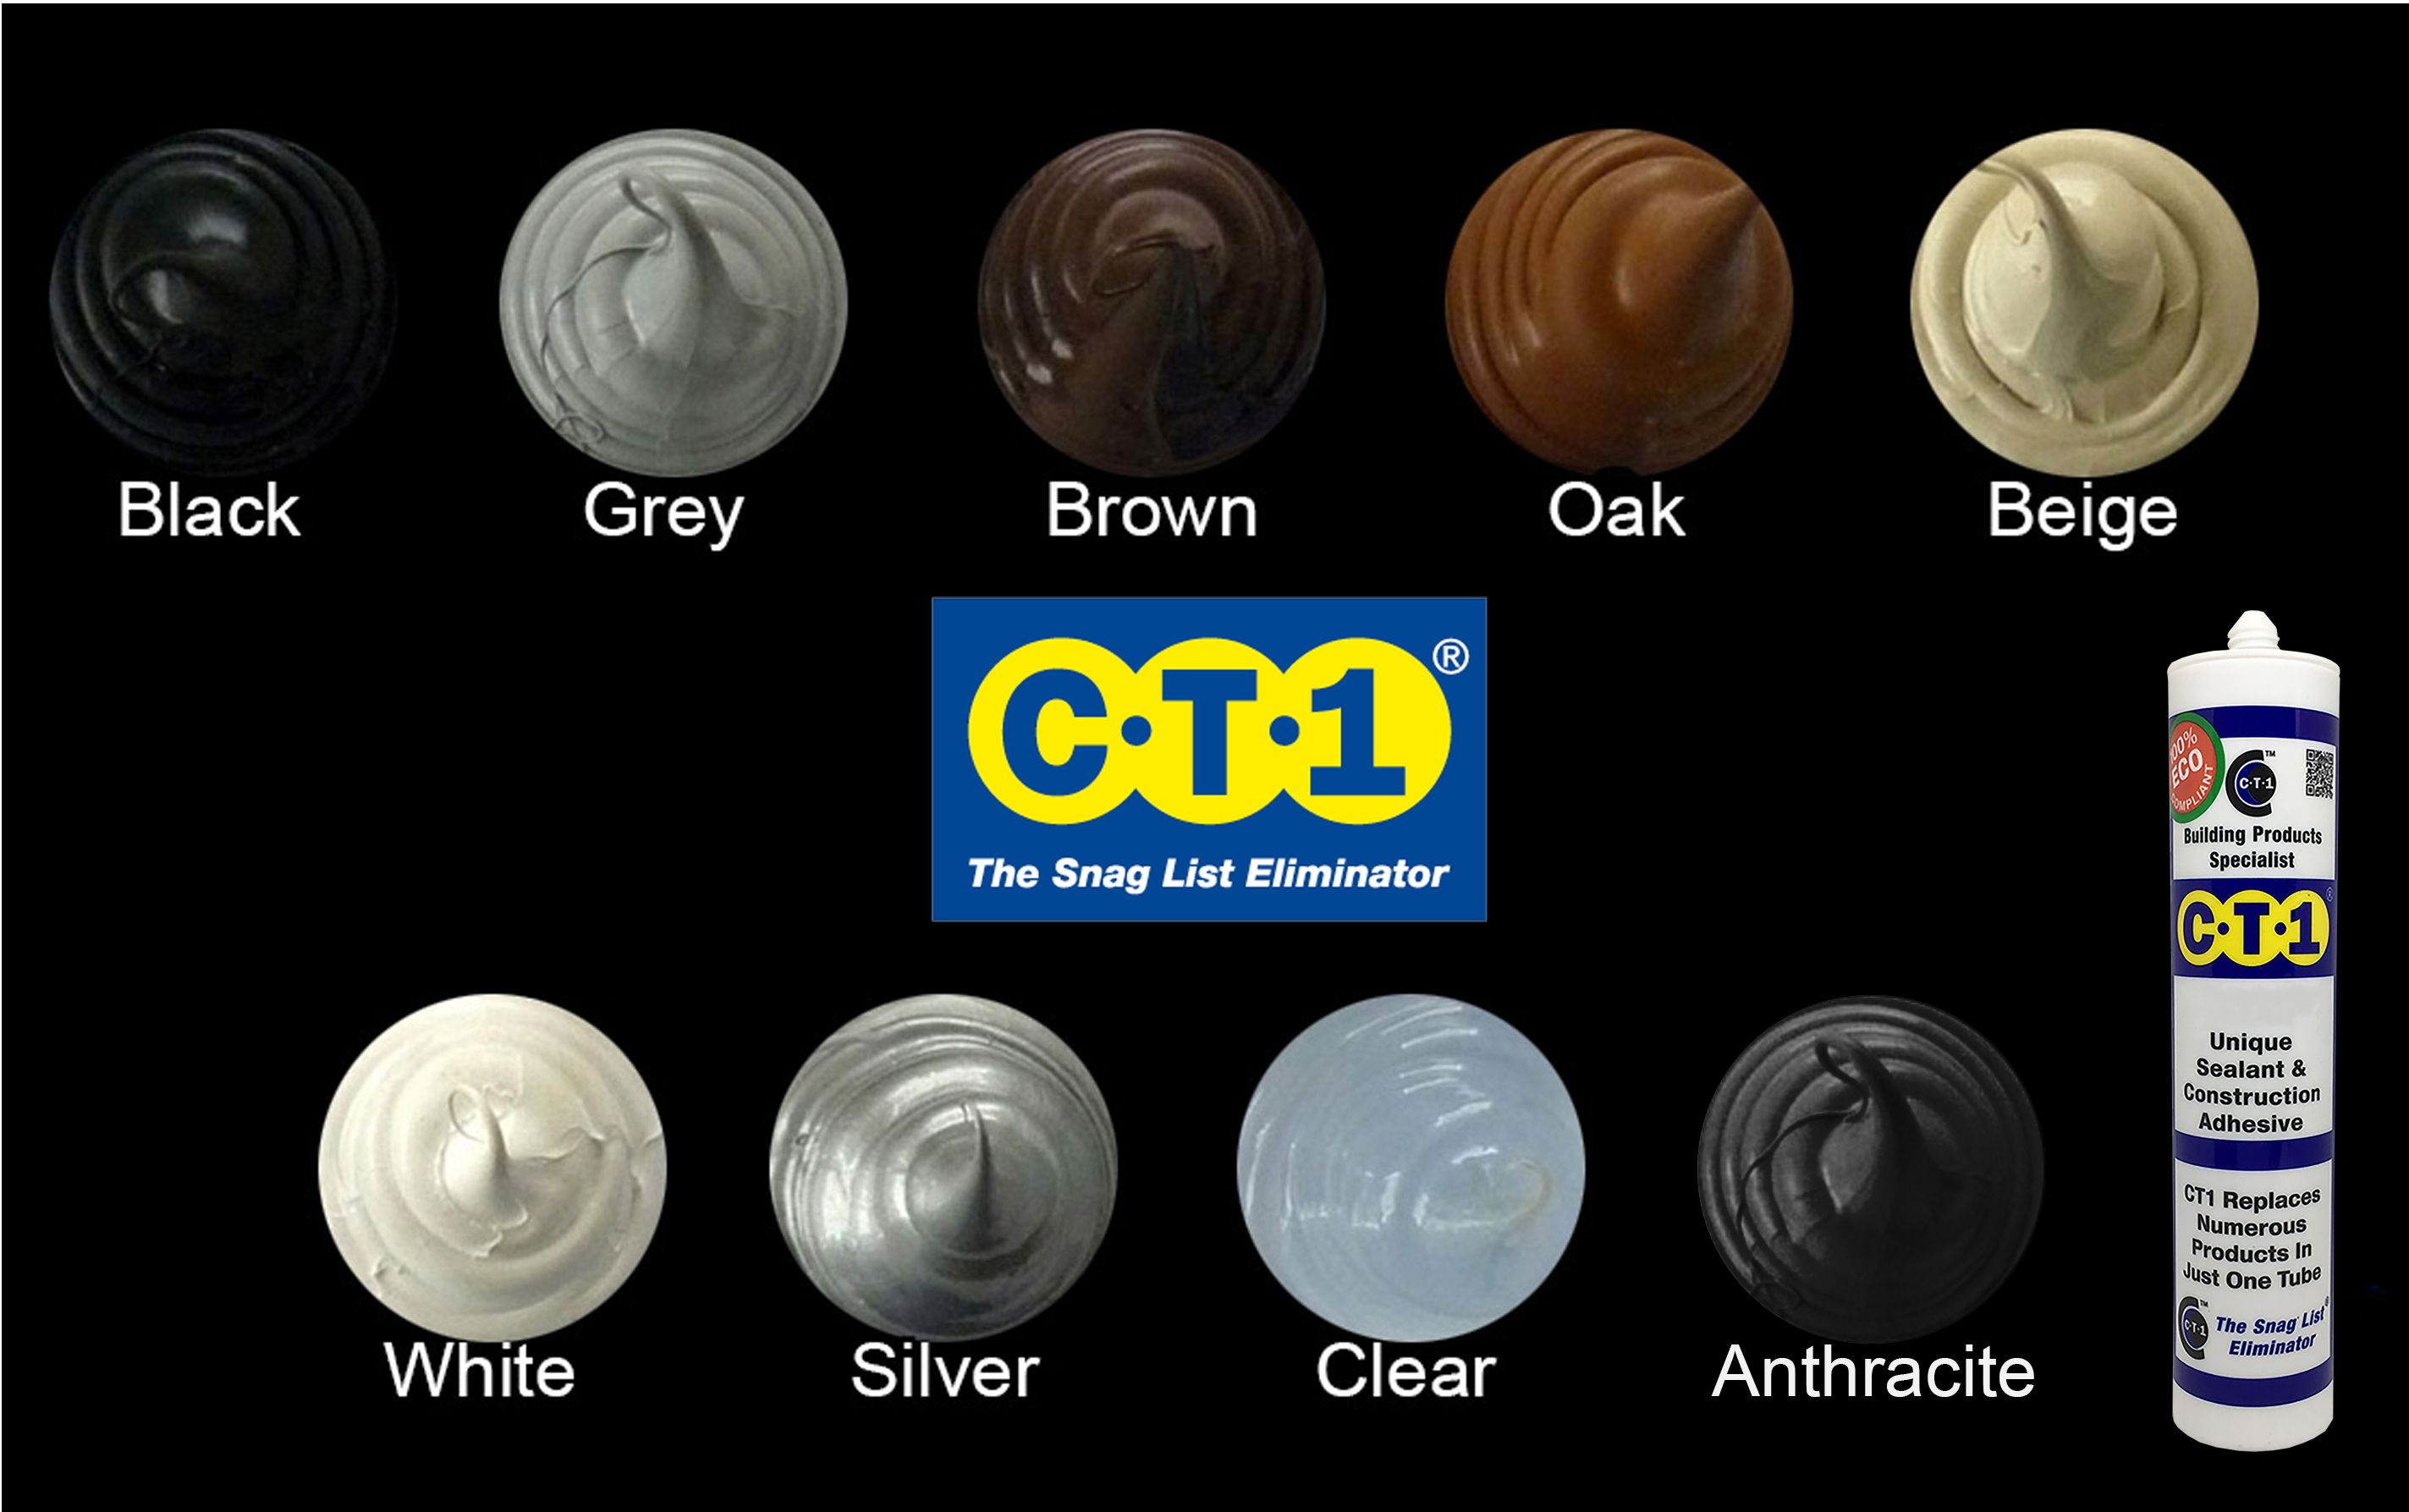 C-Tec CT1 Adhesive/Sealant colours